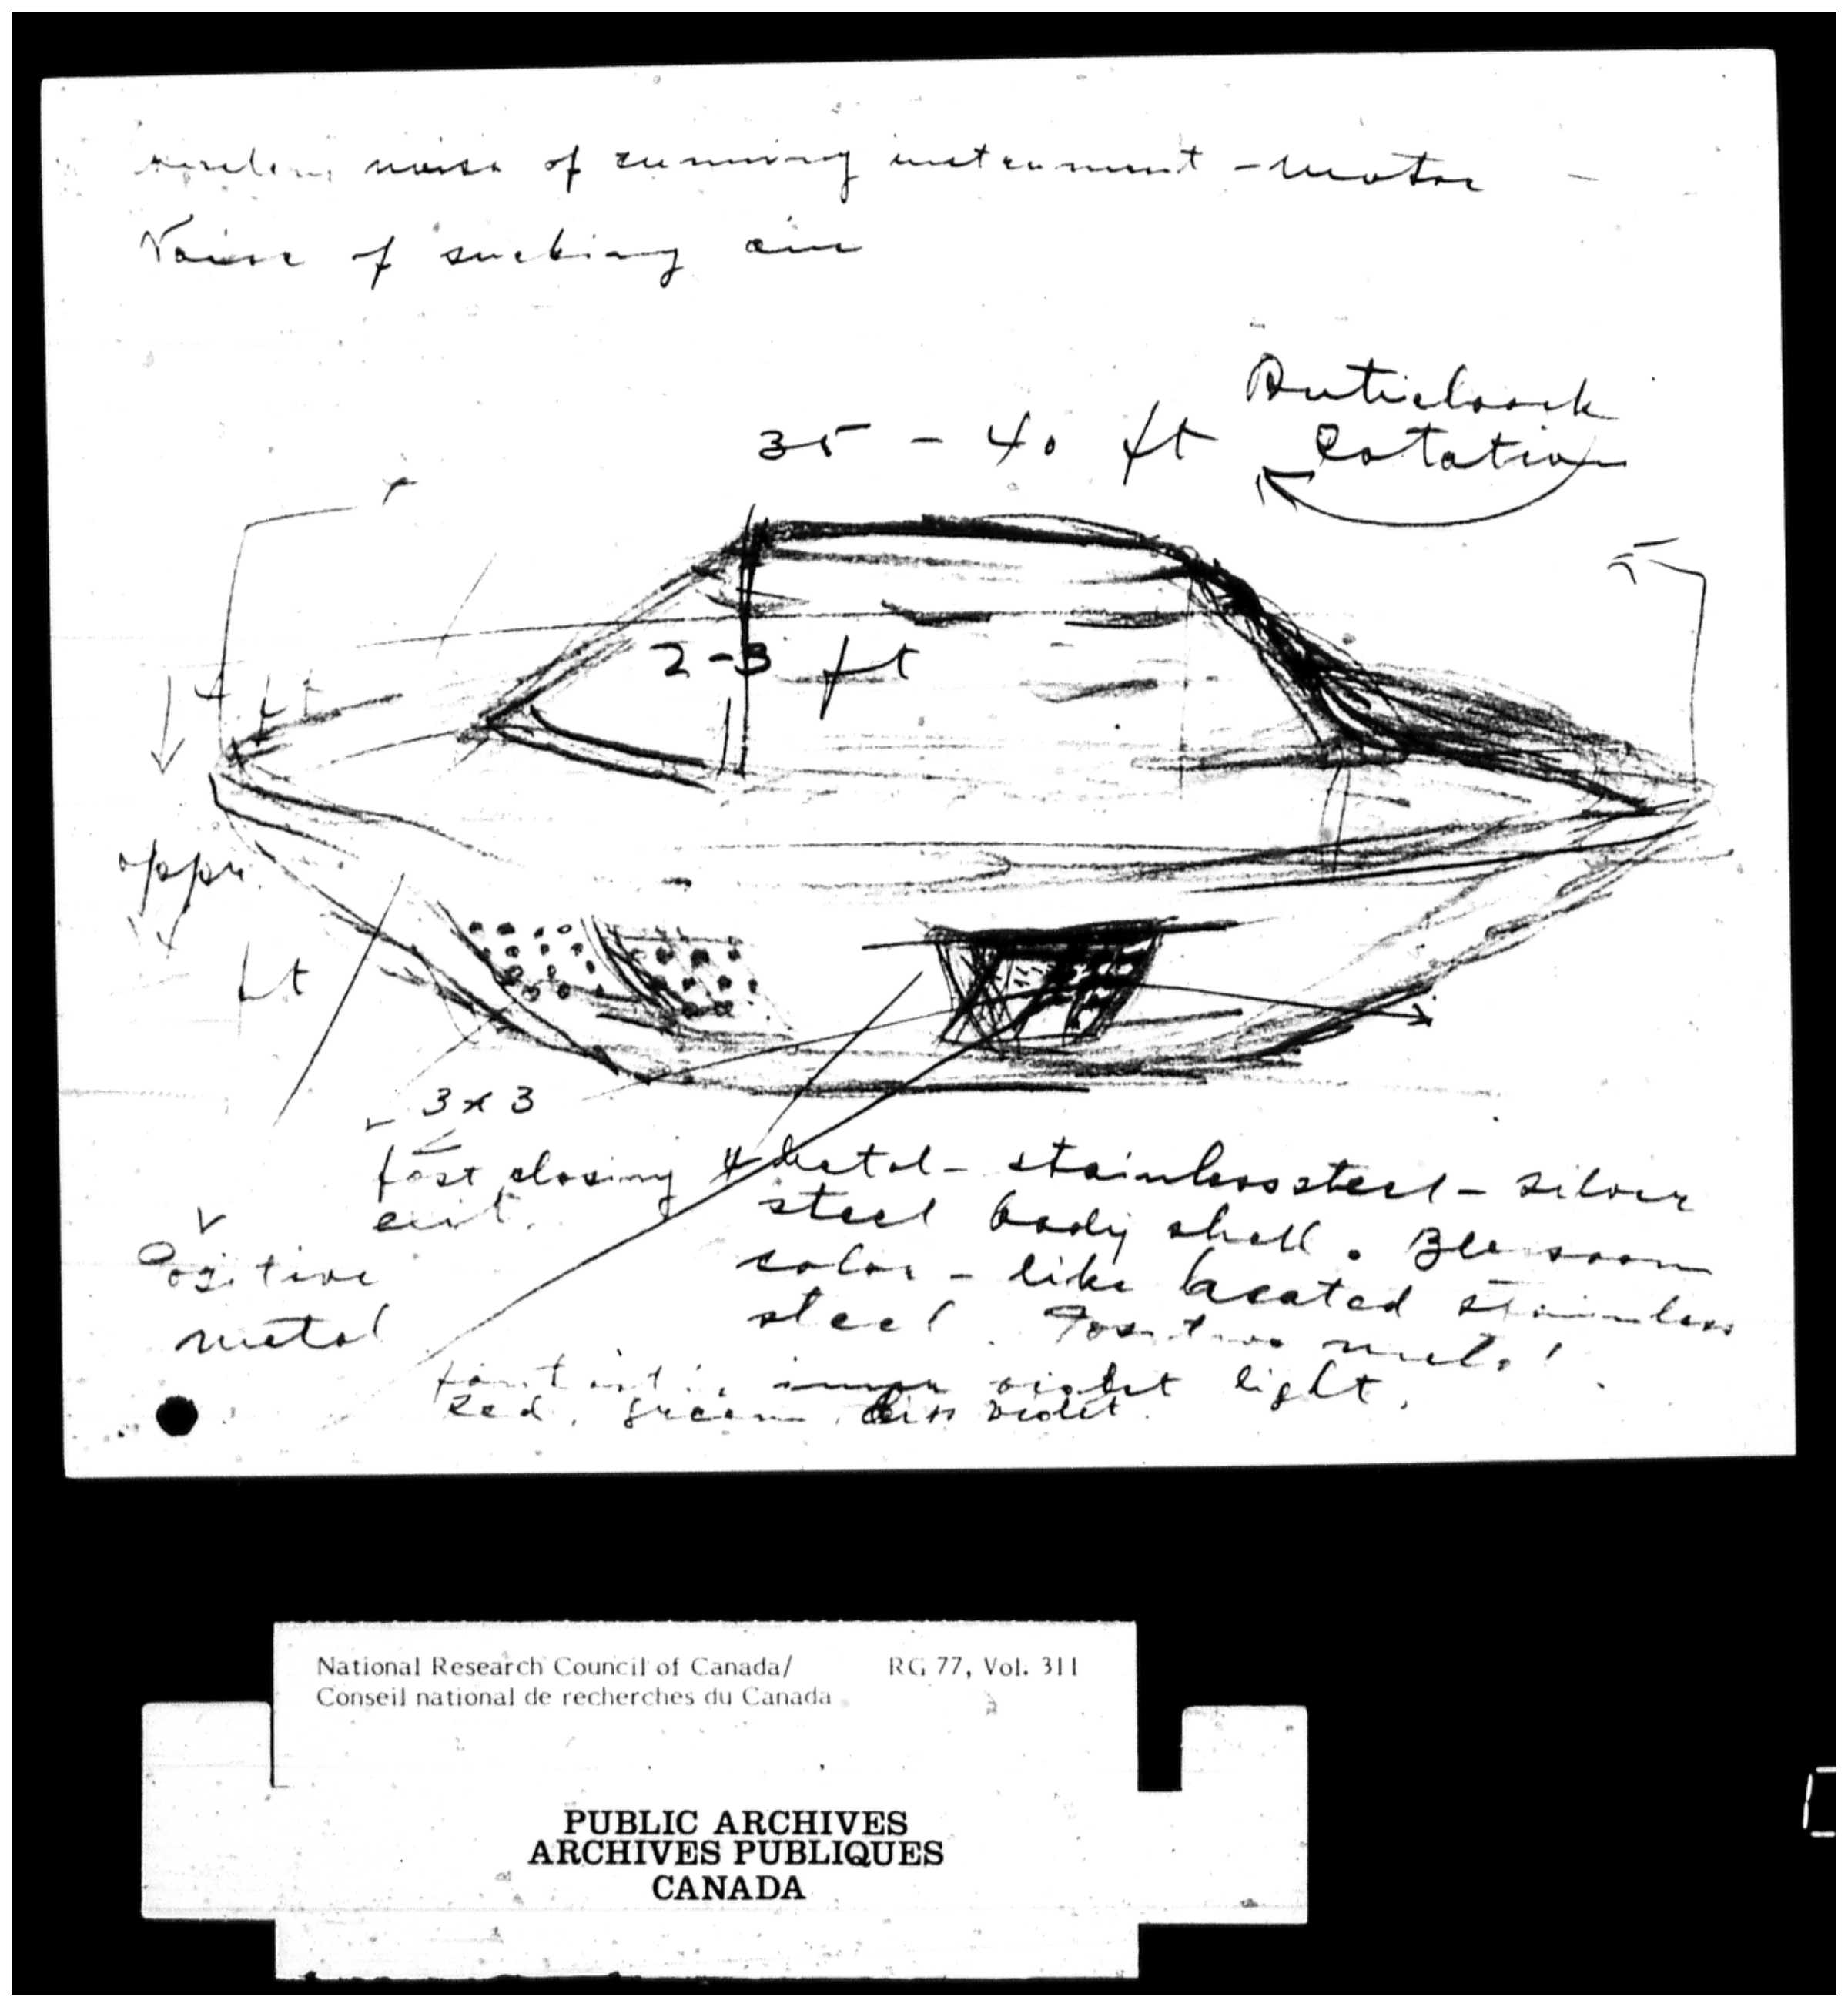 Sketch of the flying saucer based on Stefan Michalak's 1967 account of a UFO encounter in Falcon Lake, MB